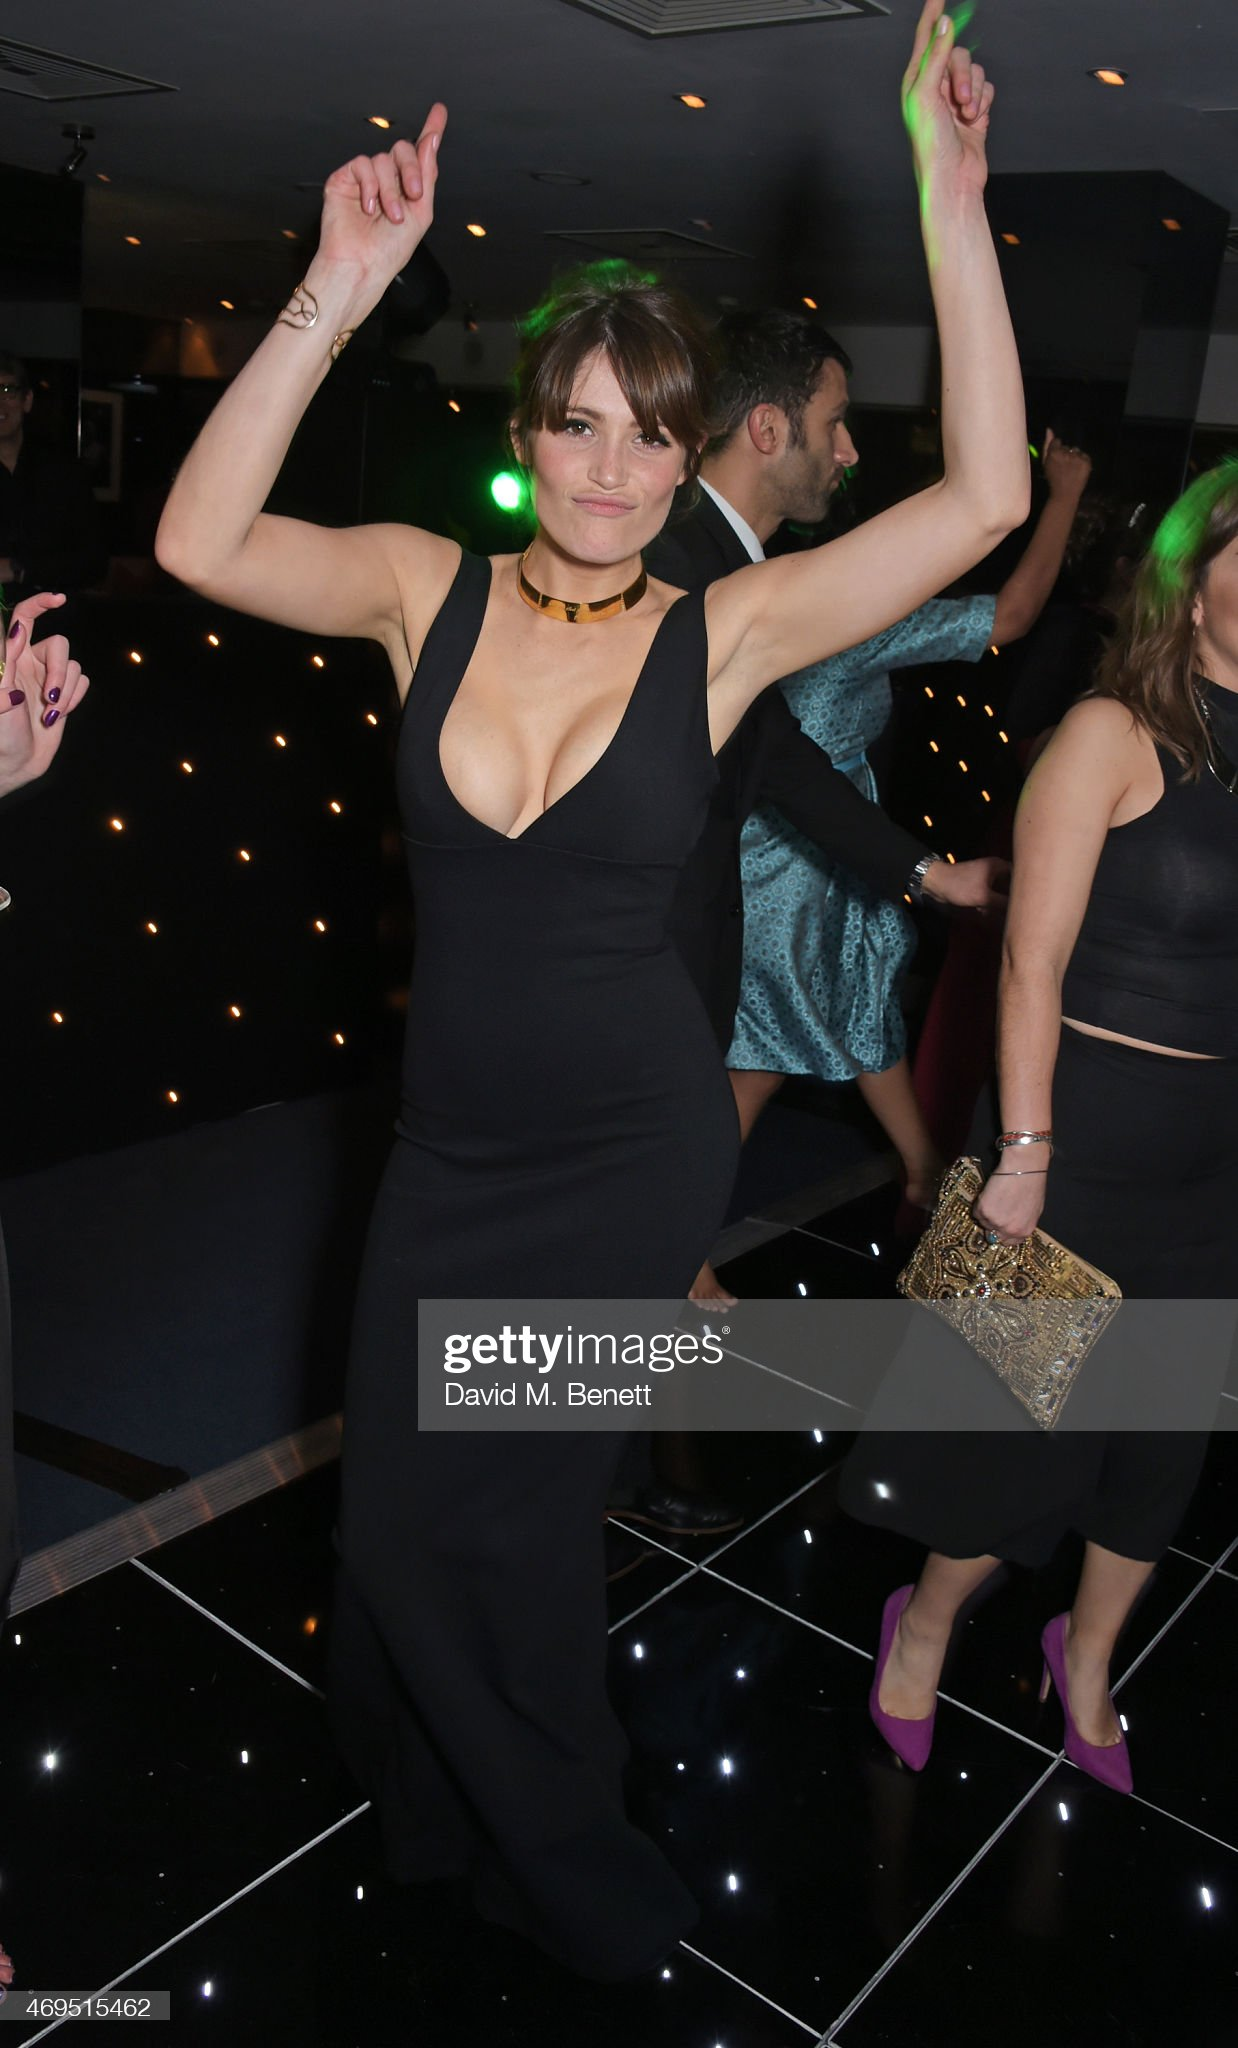 gemma-arterton-attends-the-olivier-awards-after-party-at-the-royal-picture-id469515462